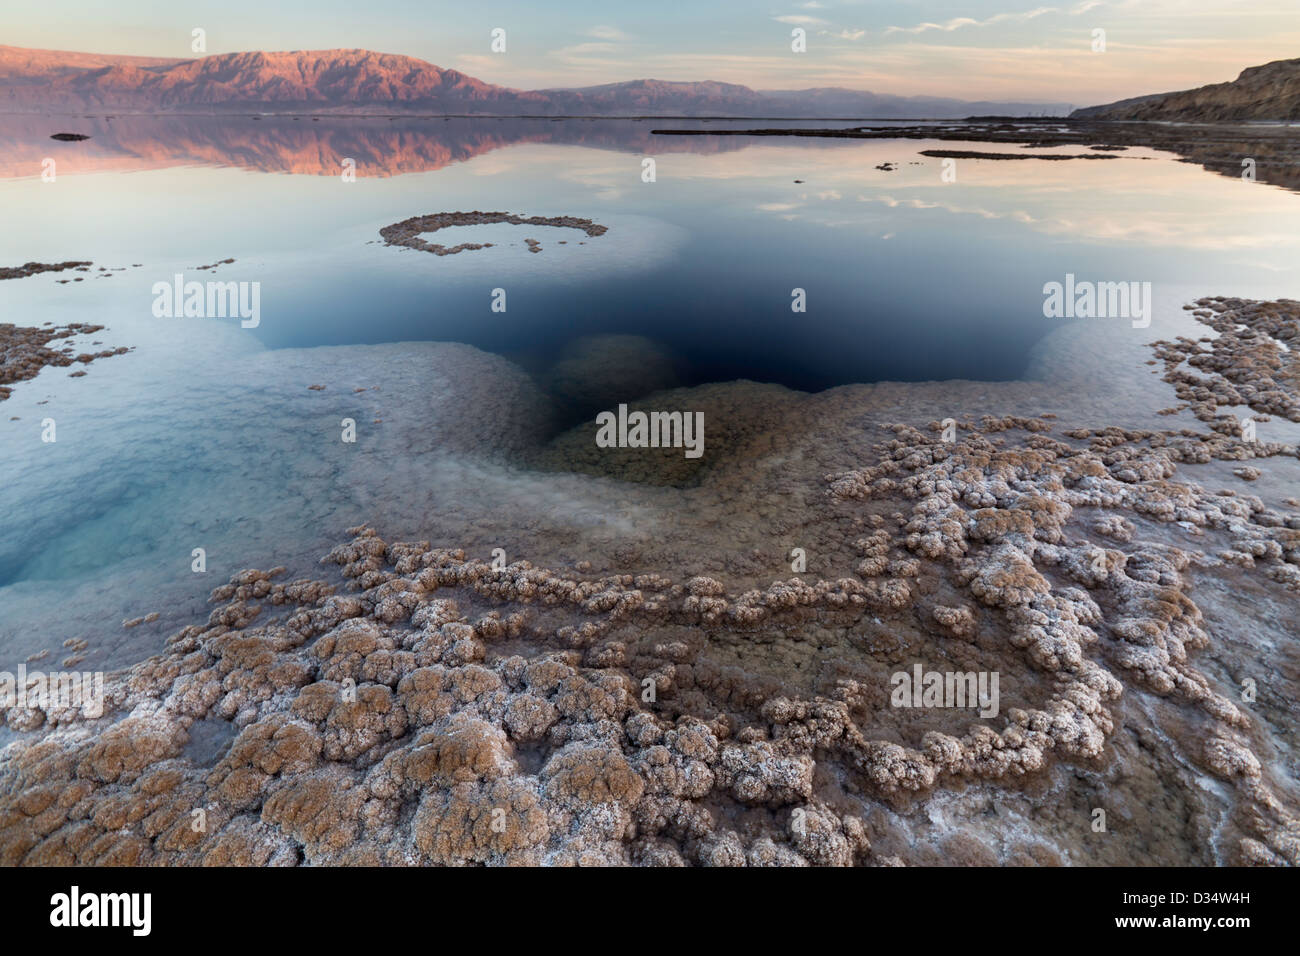 View of the Dead Sea coastline at sunset time Stock Photo